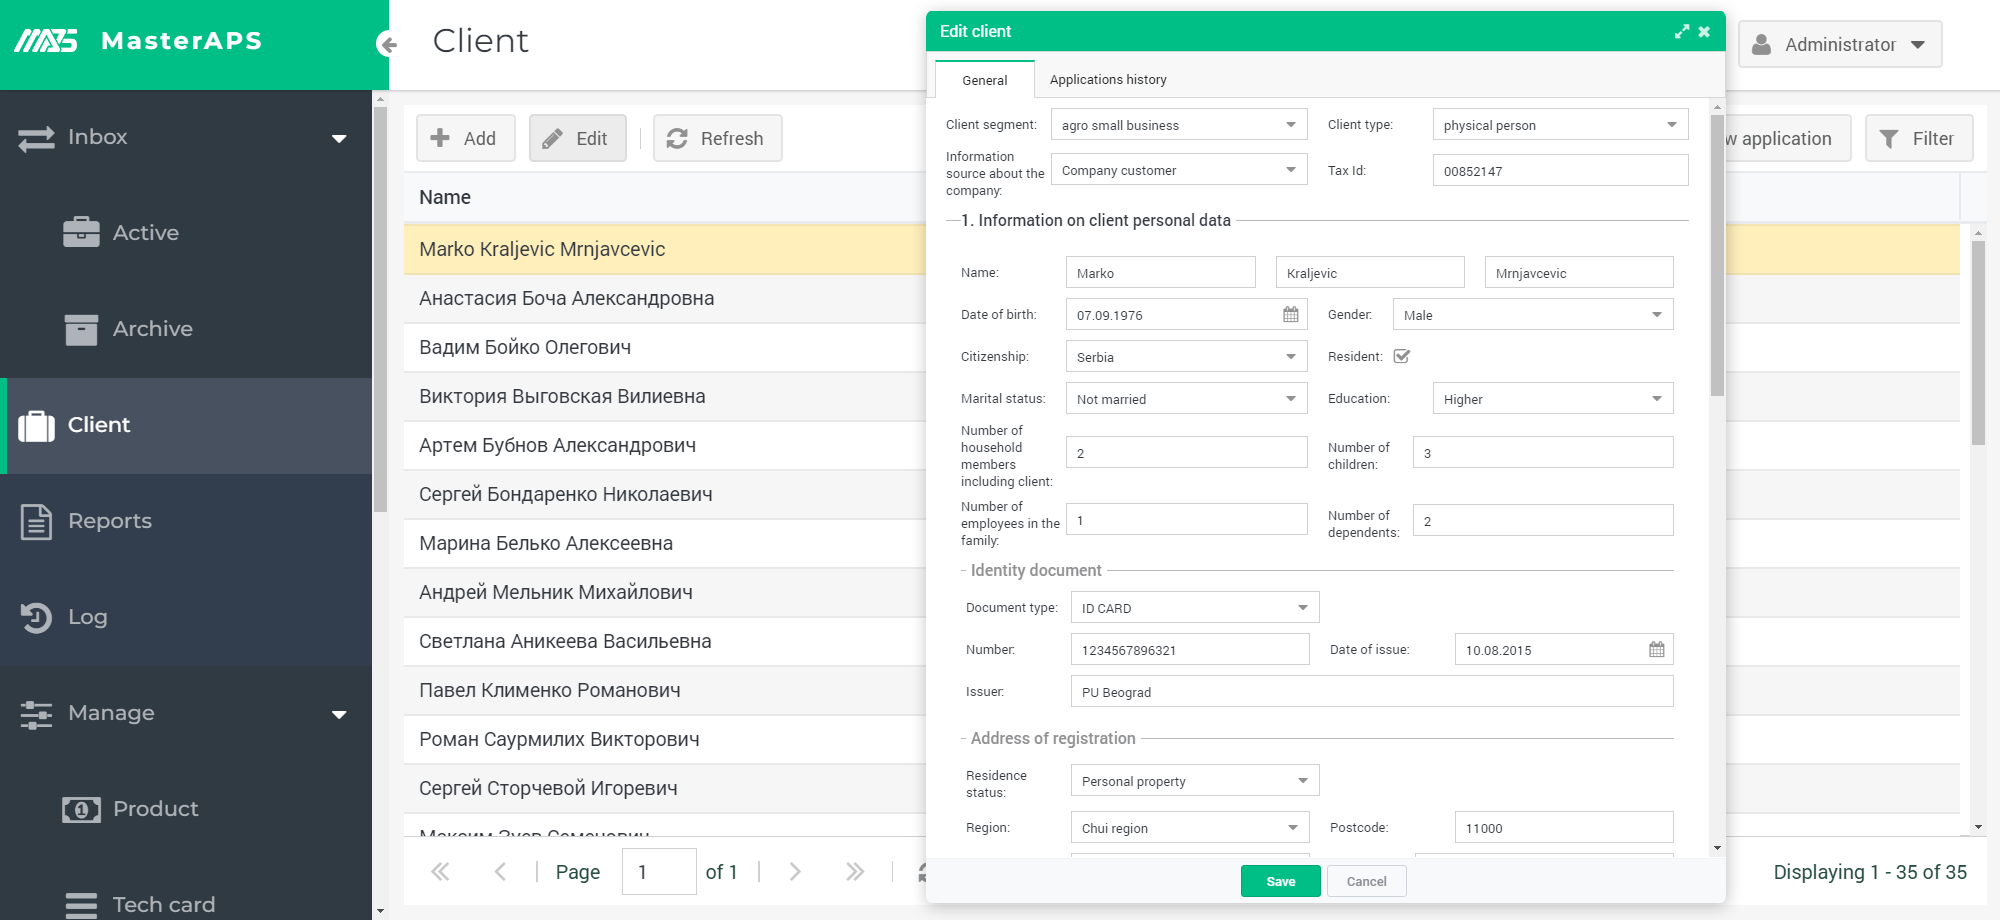 Connect to your client database